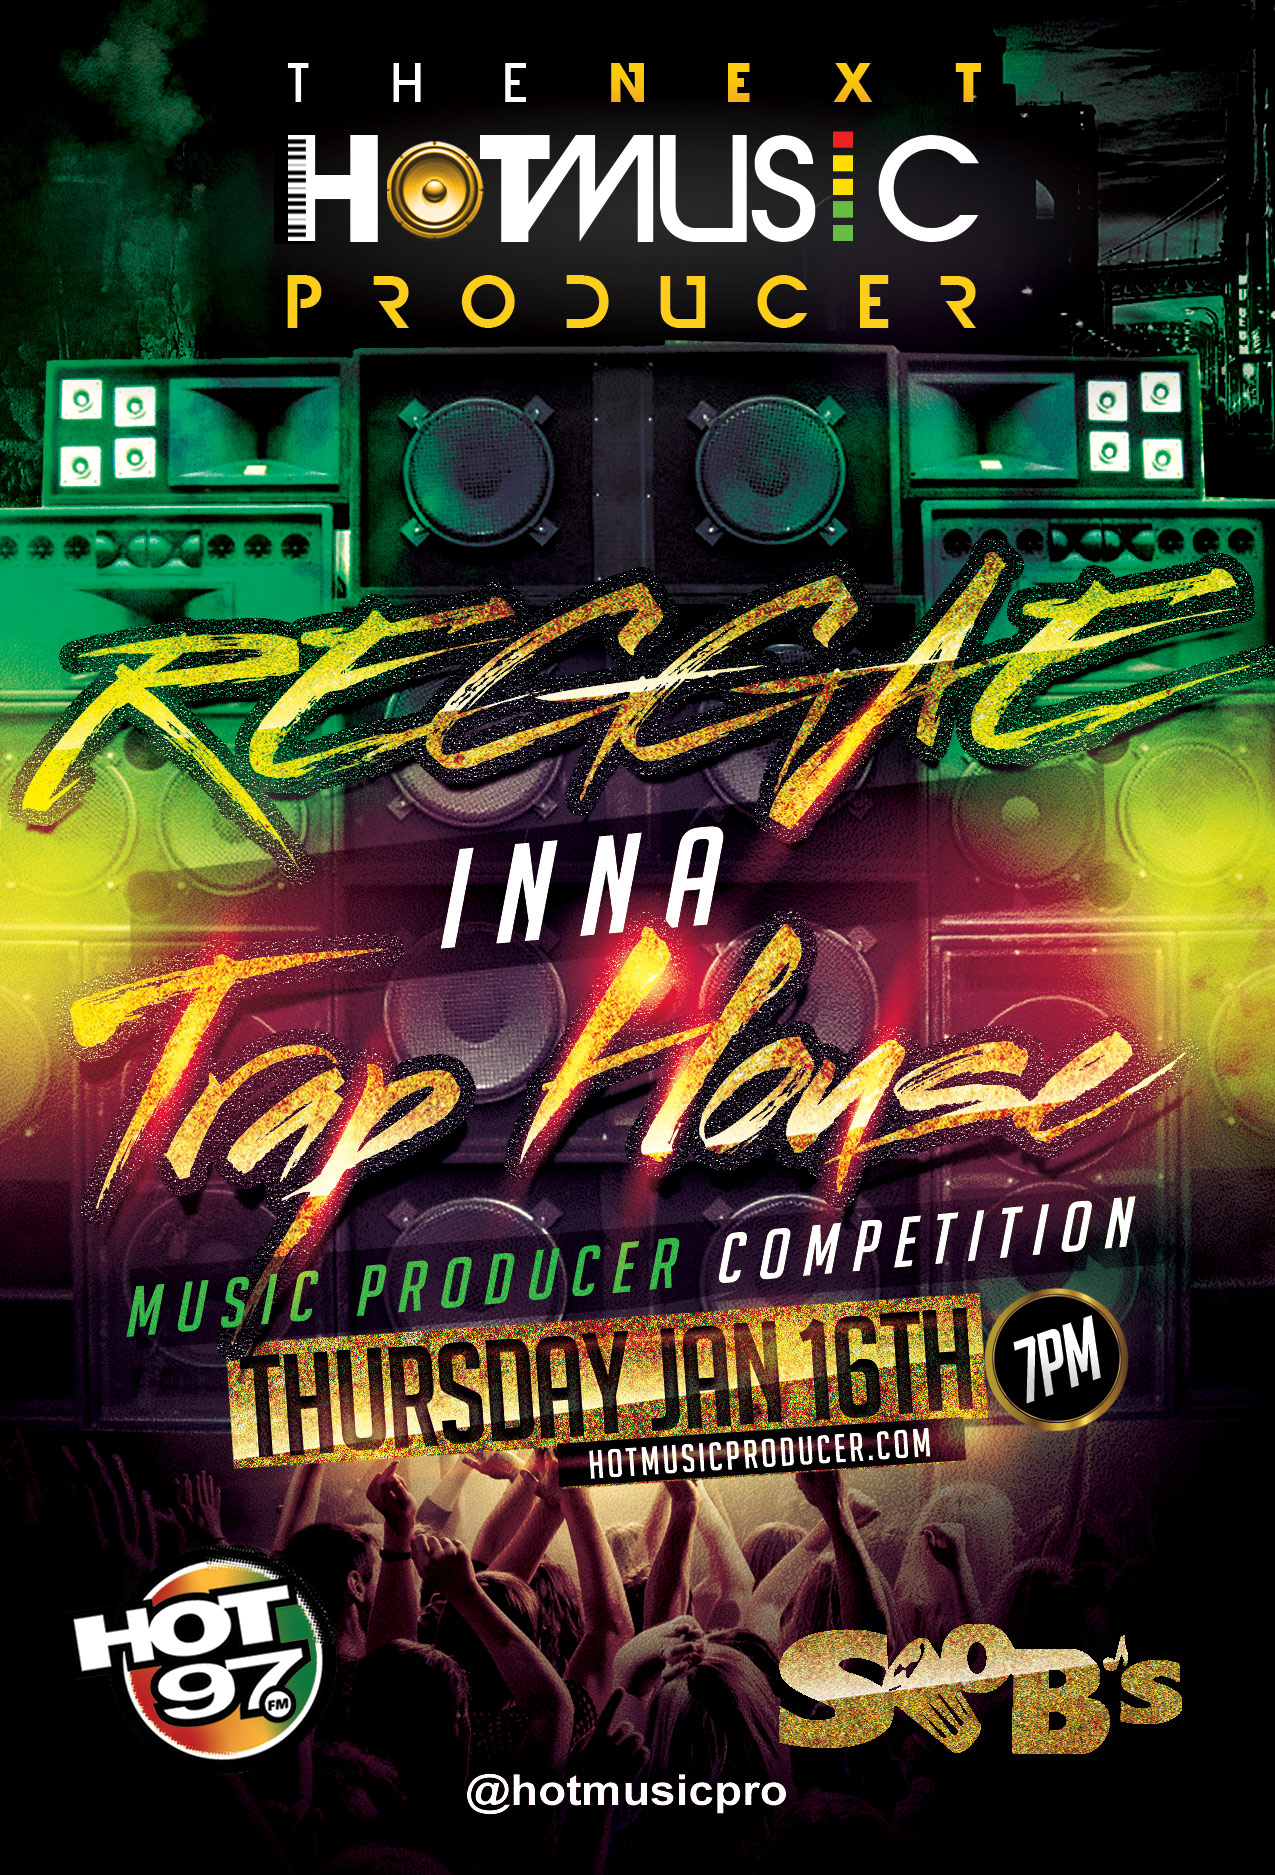 Flyer for The Reggae Inna Trap House Next Hot Music Producer Episode